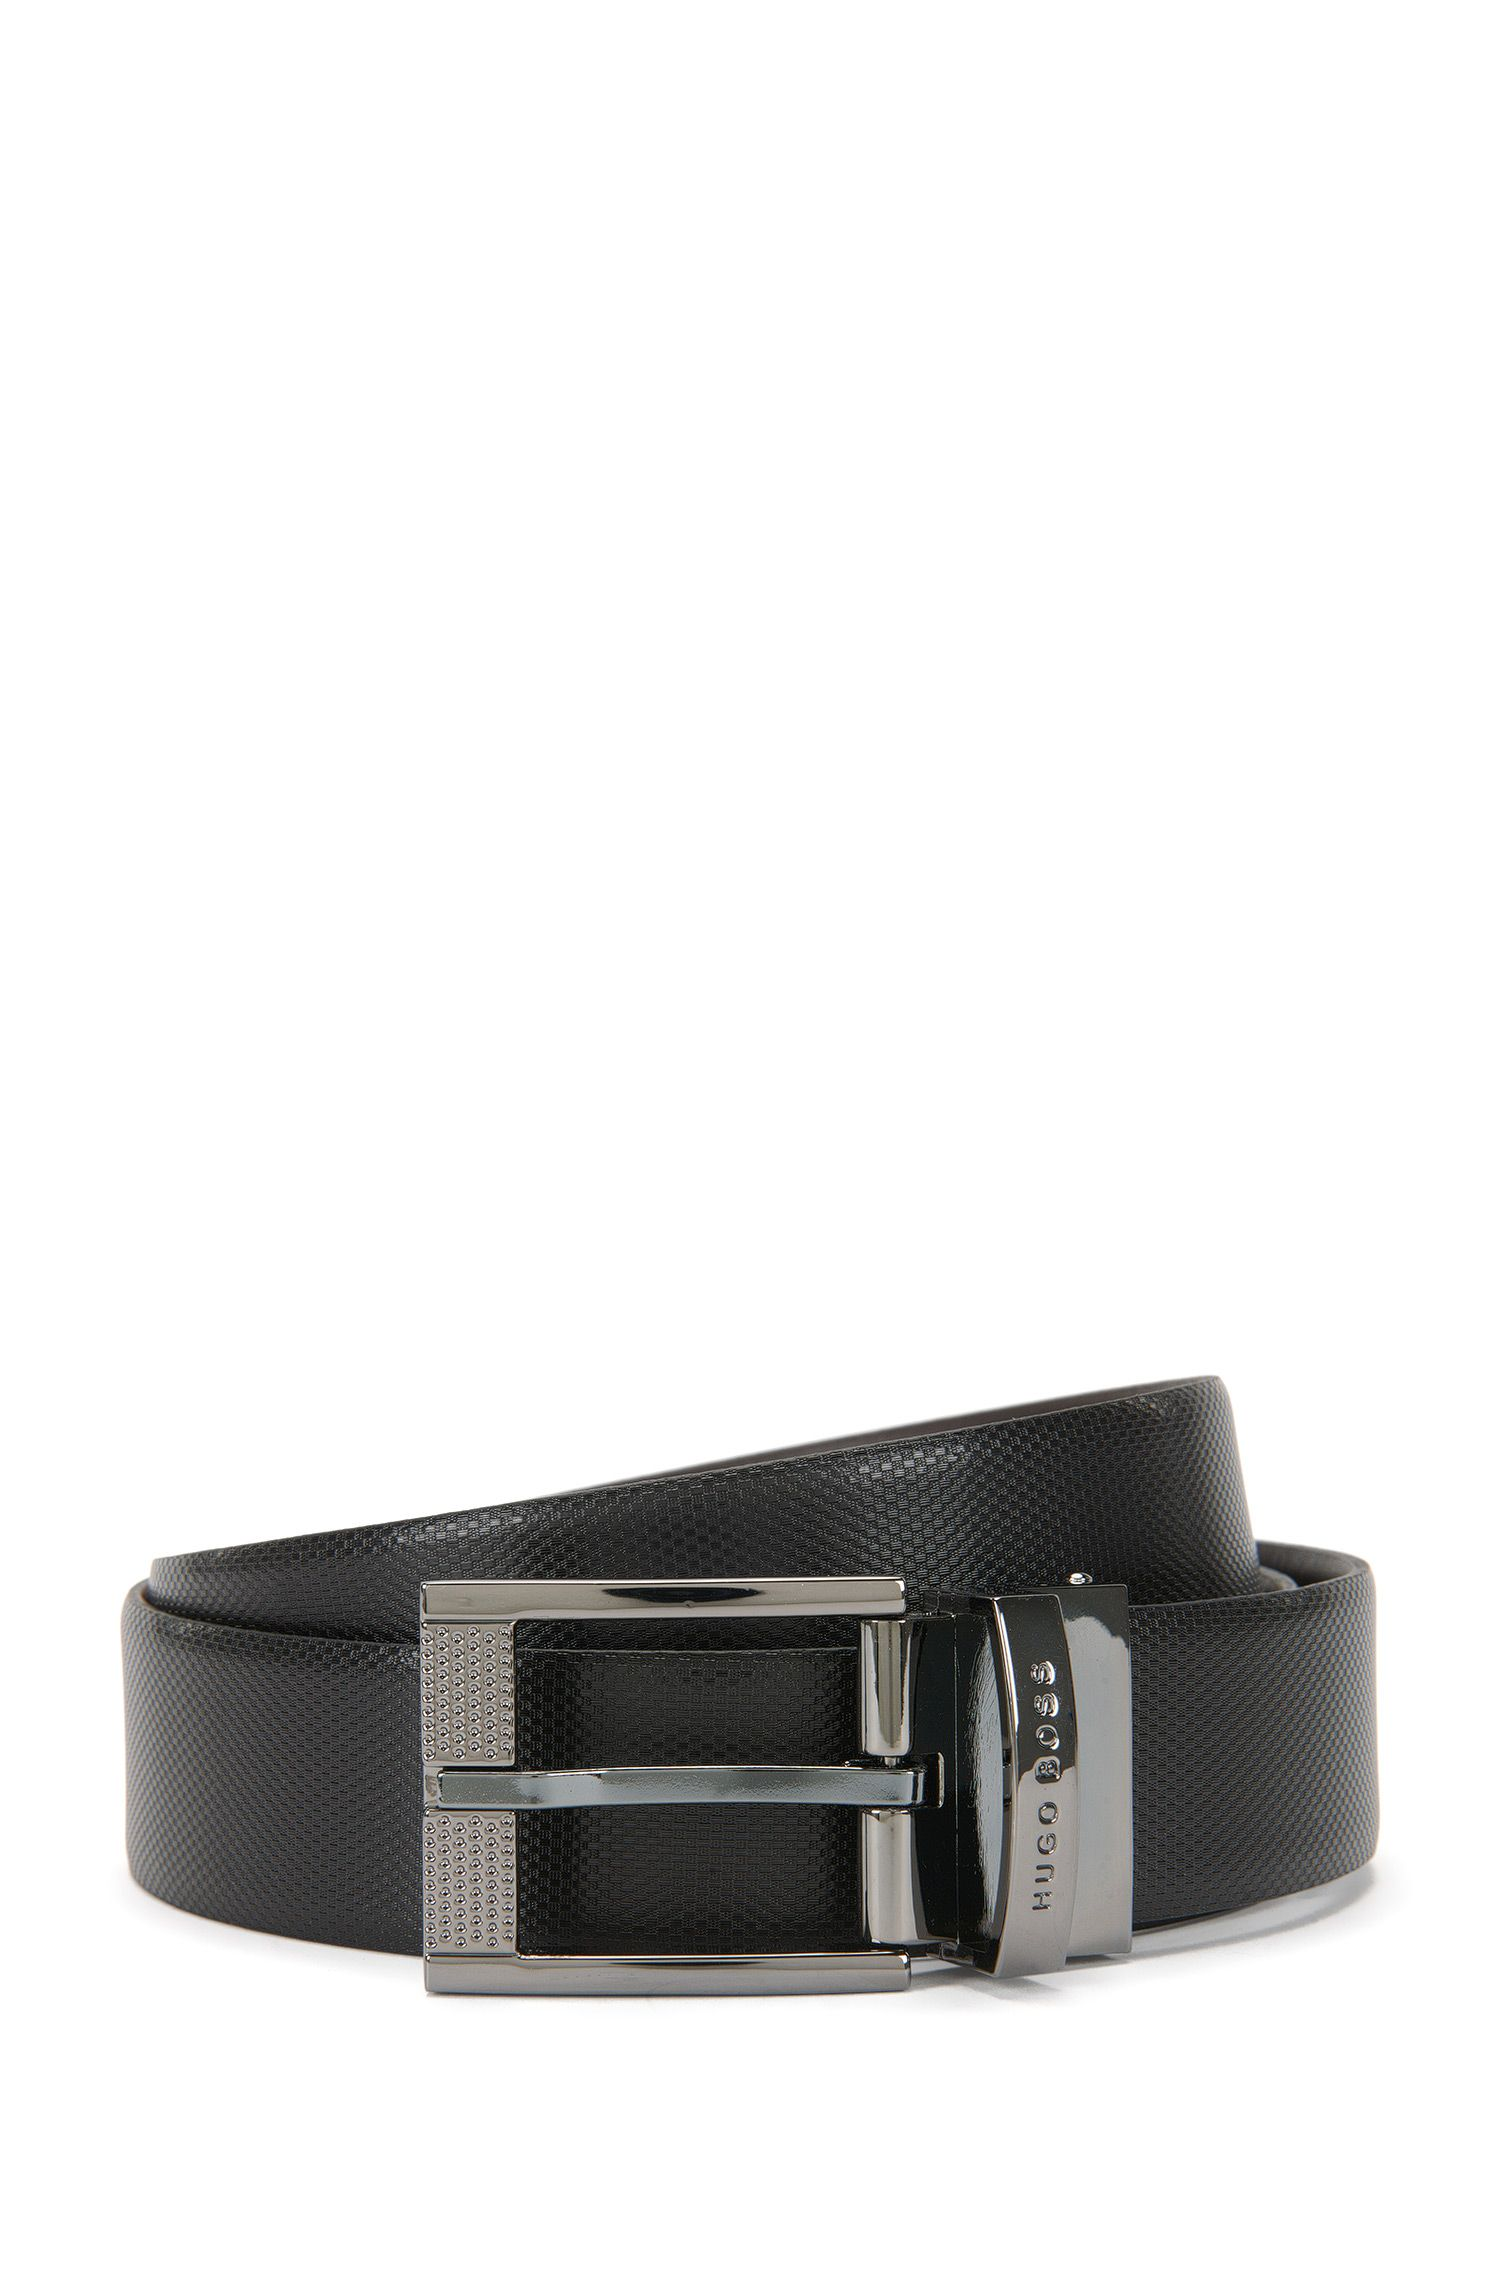 Reversible belt in premium leather